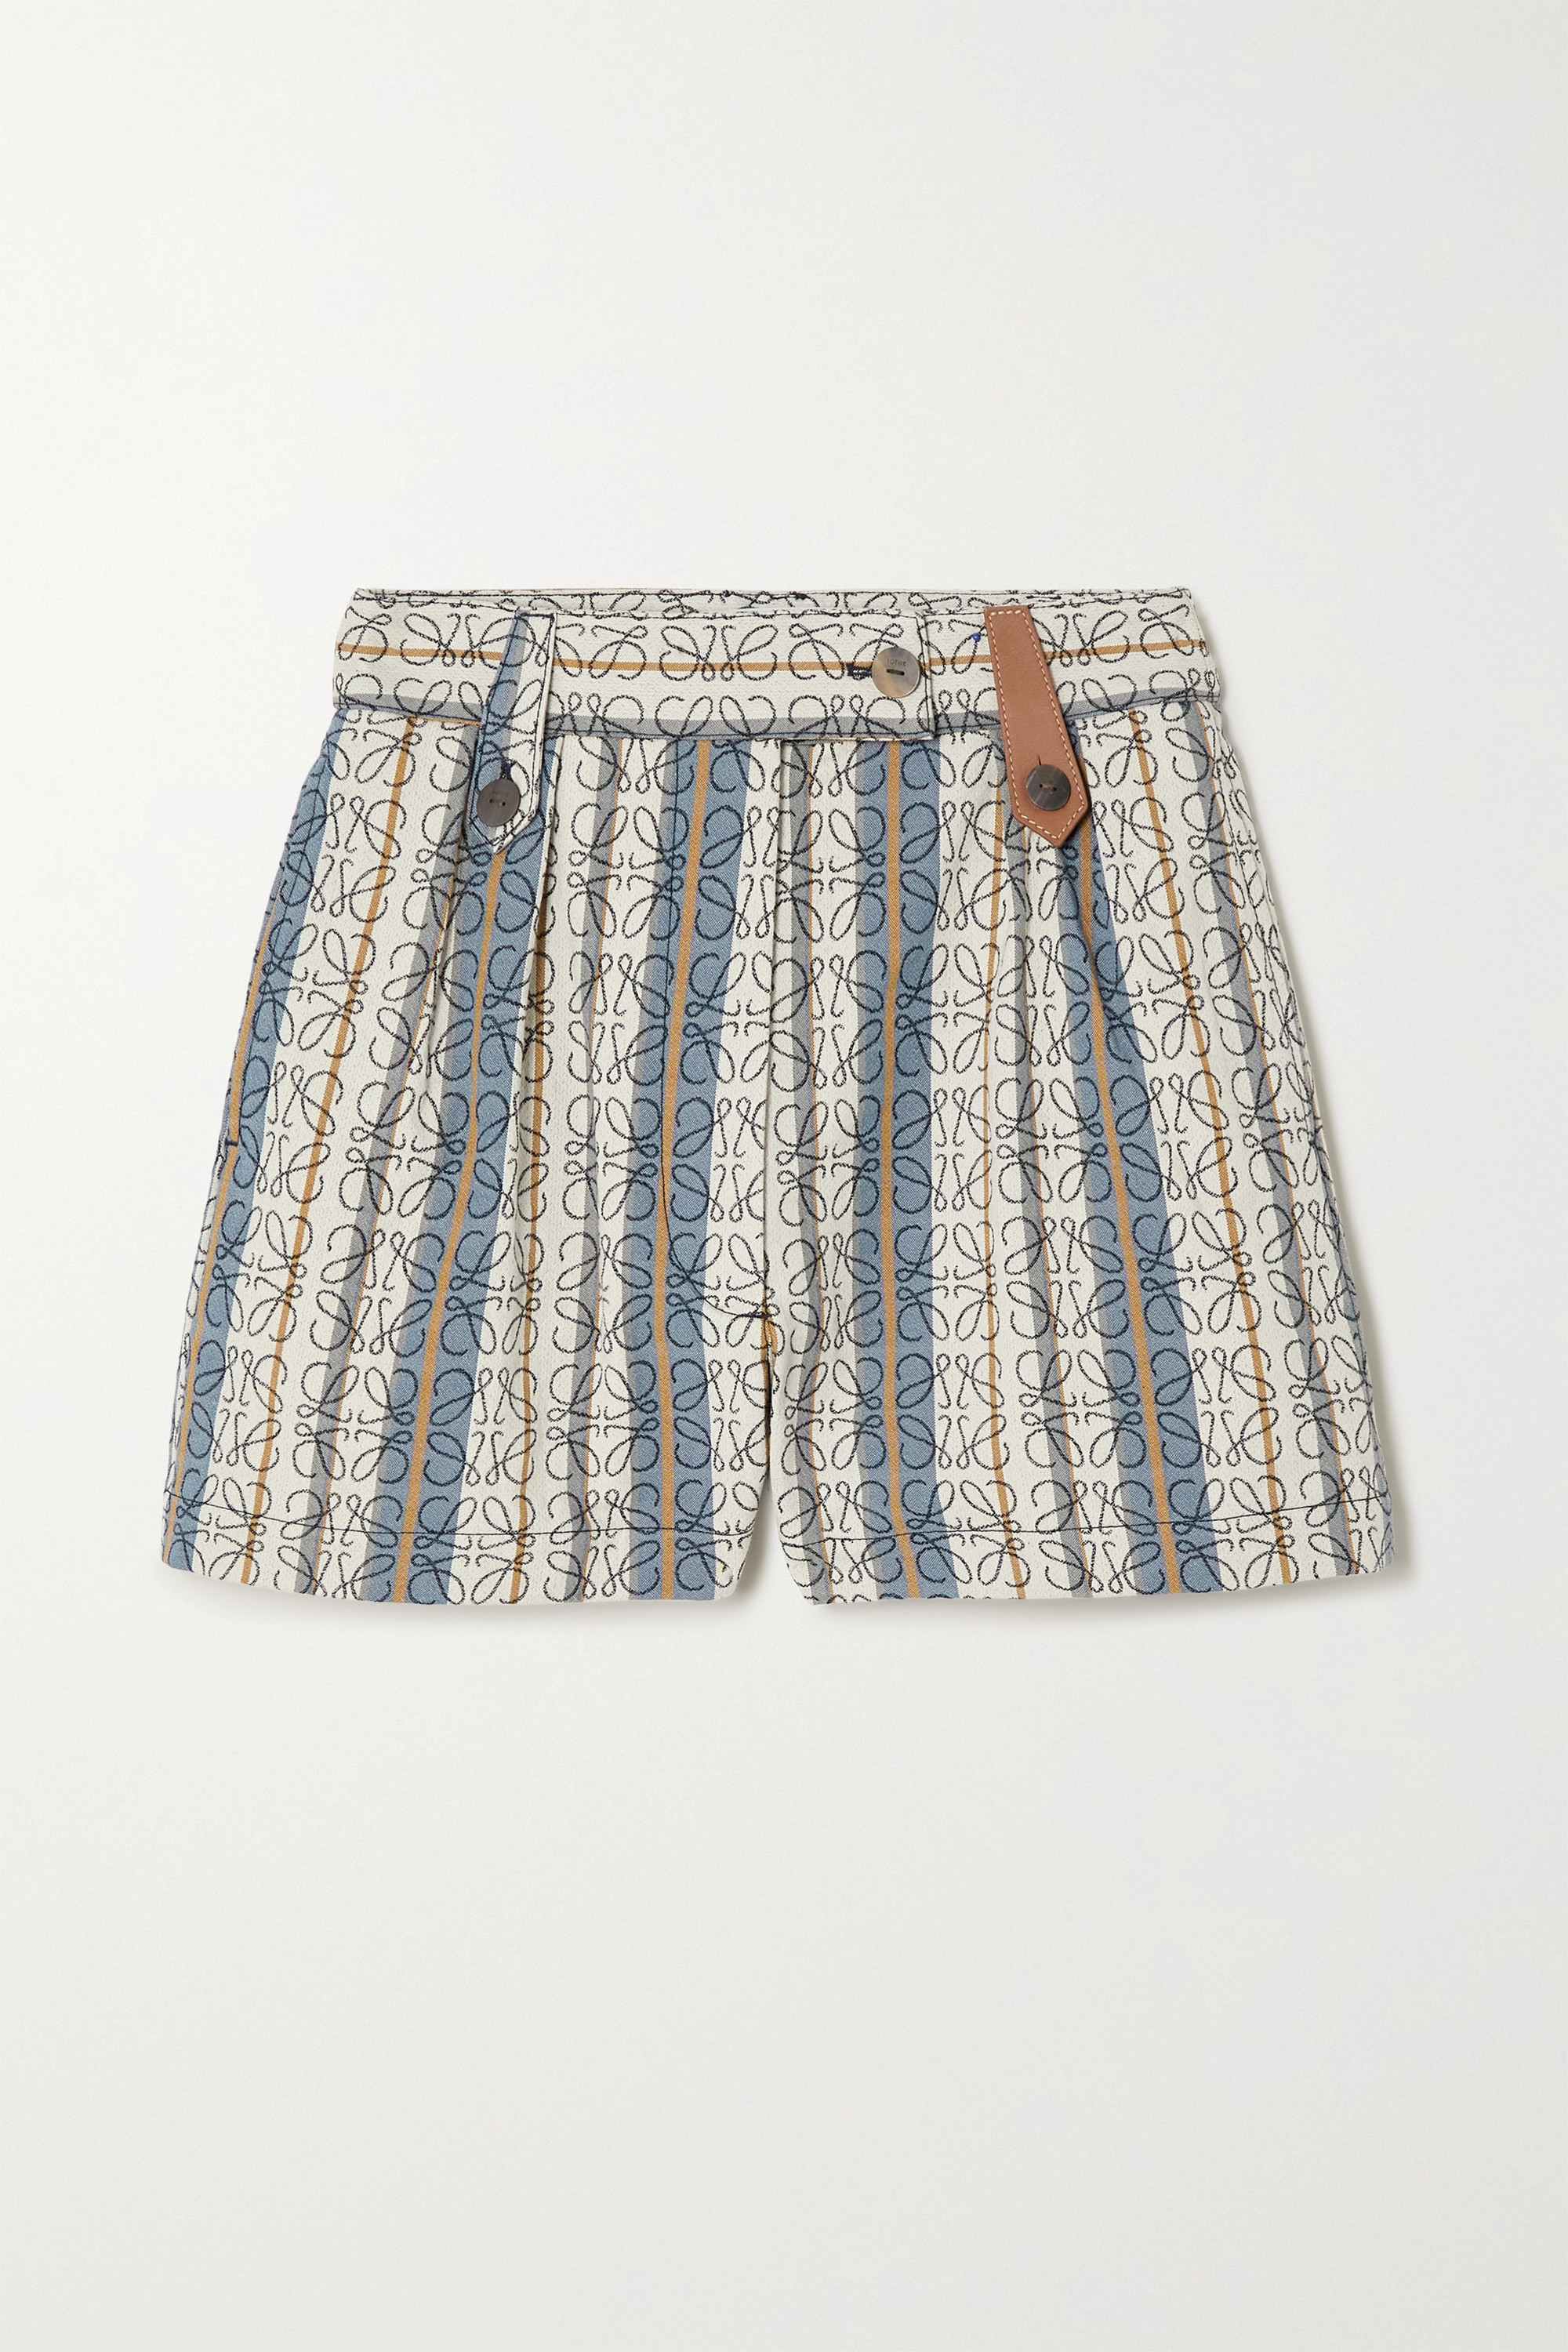 Loewe Leather-trimmed striped cotton-jacquard shorts